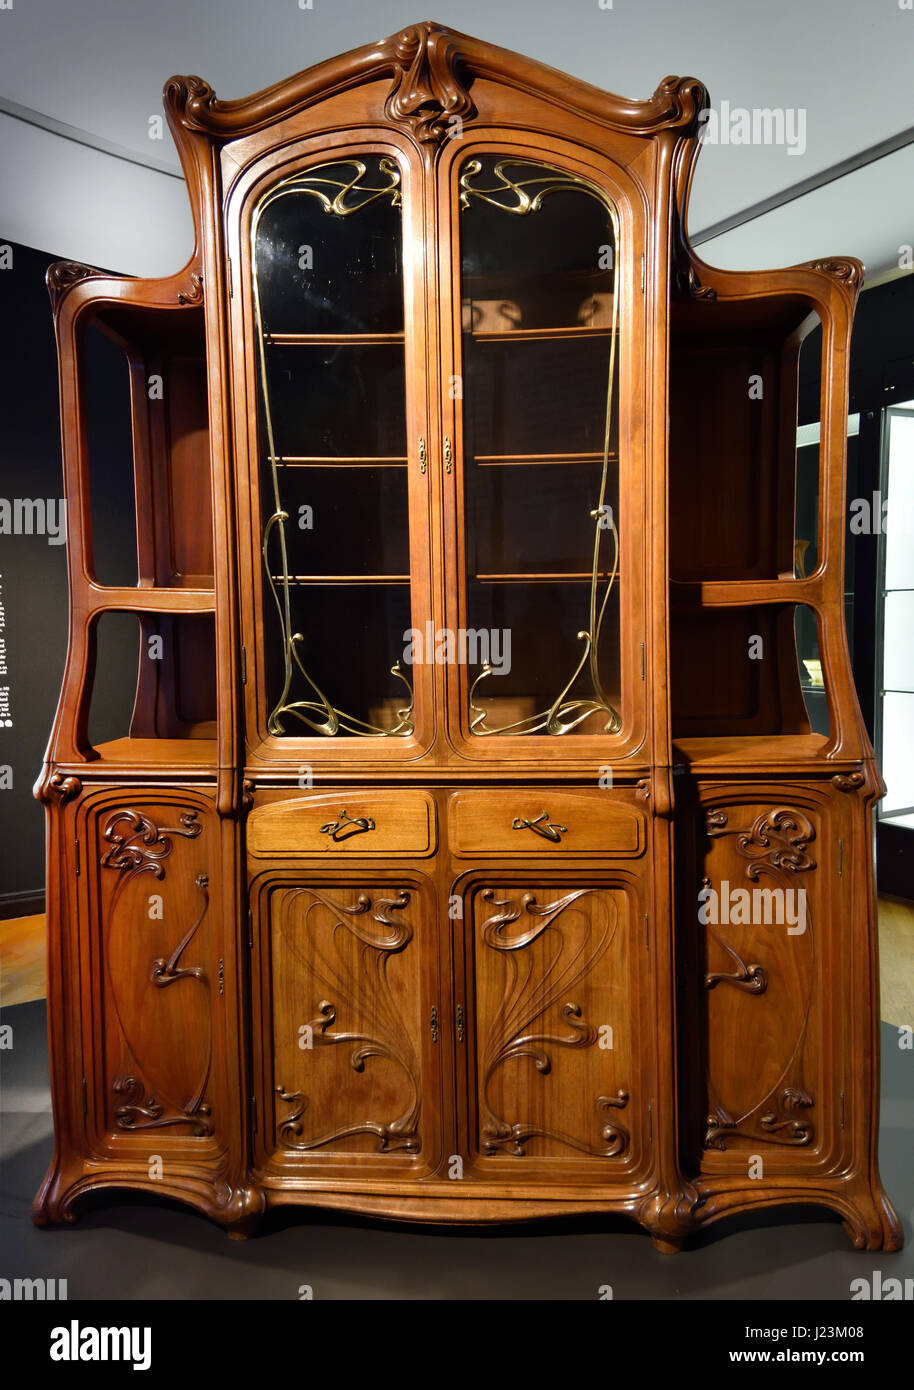 Showcase 1899 design Gaillard Eugene from a dining room LART Stock